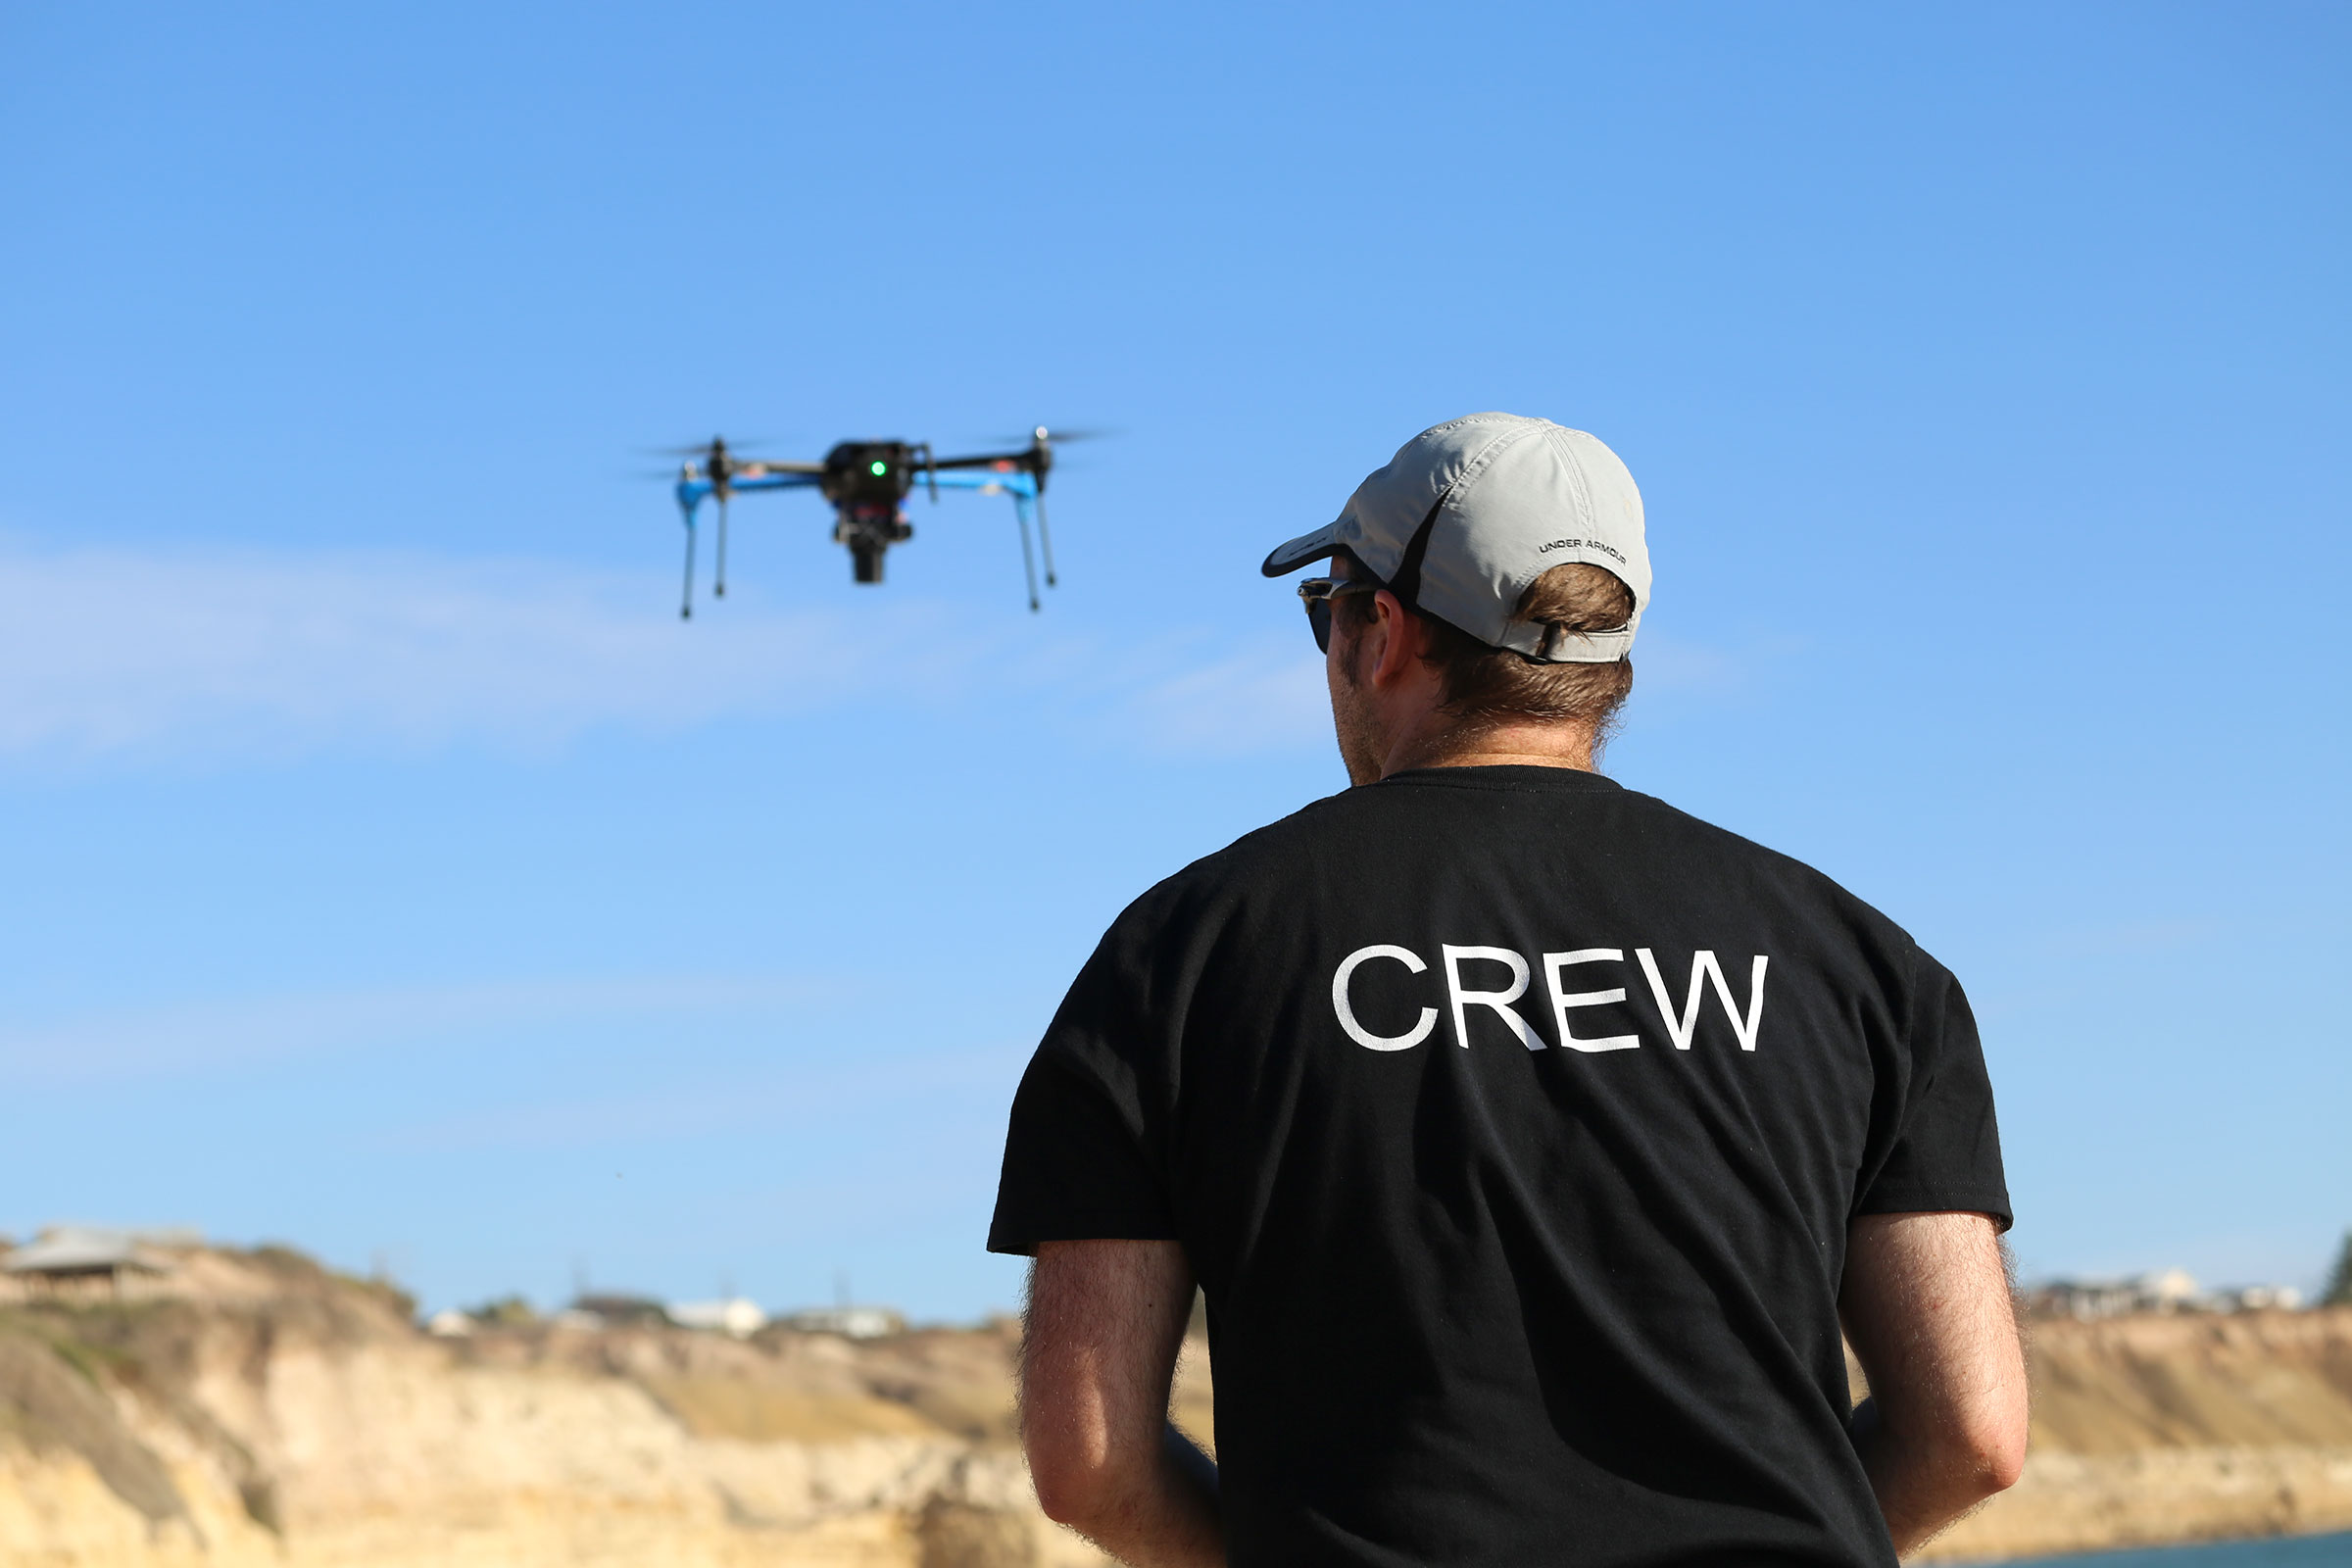 A small drone, controlled by remote control, is easily piloted from the ground. Jarrod Hodgson